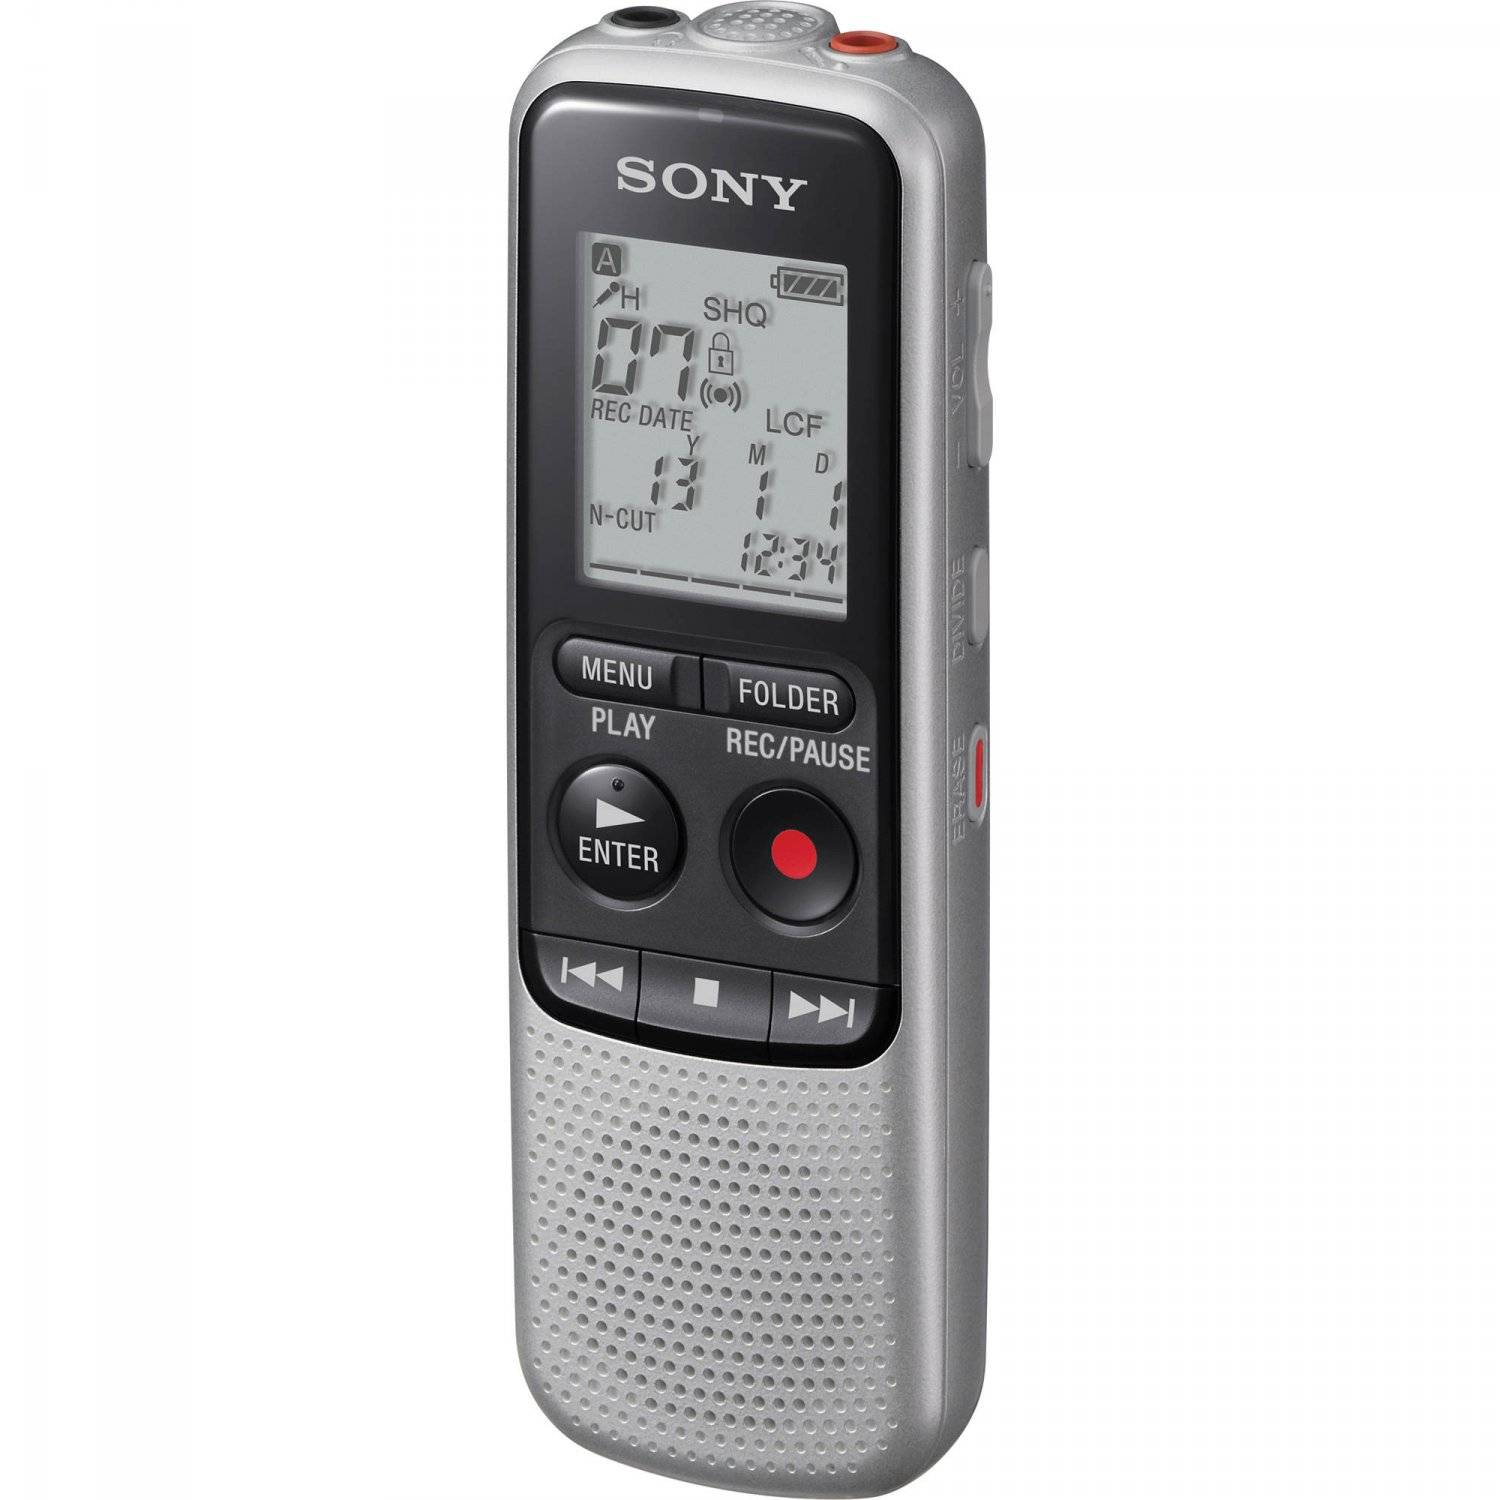 Sony Icd-Bx140 Digital Voice Recorder 4gb Non Pc